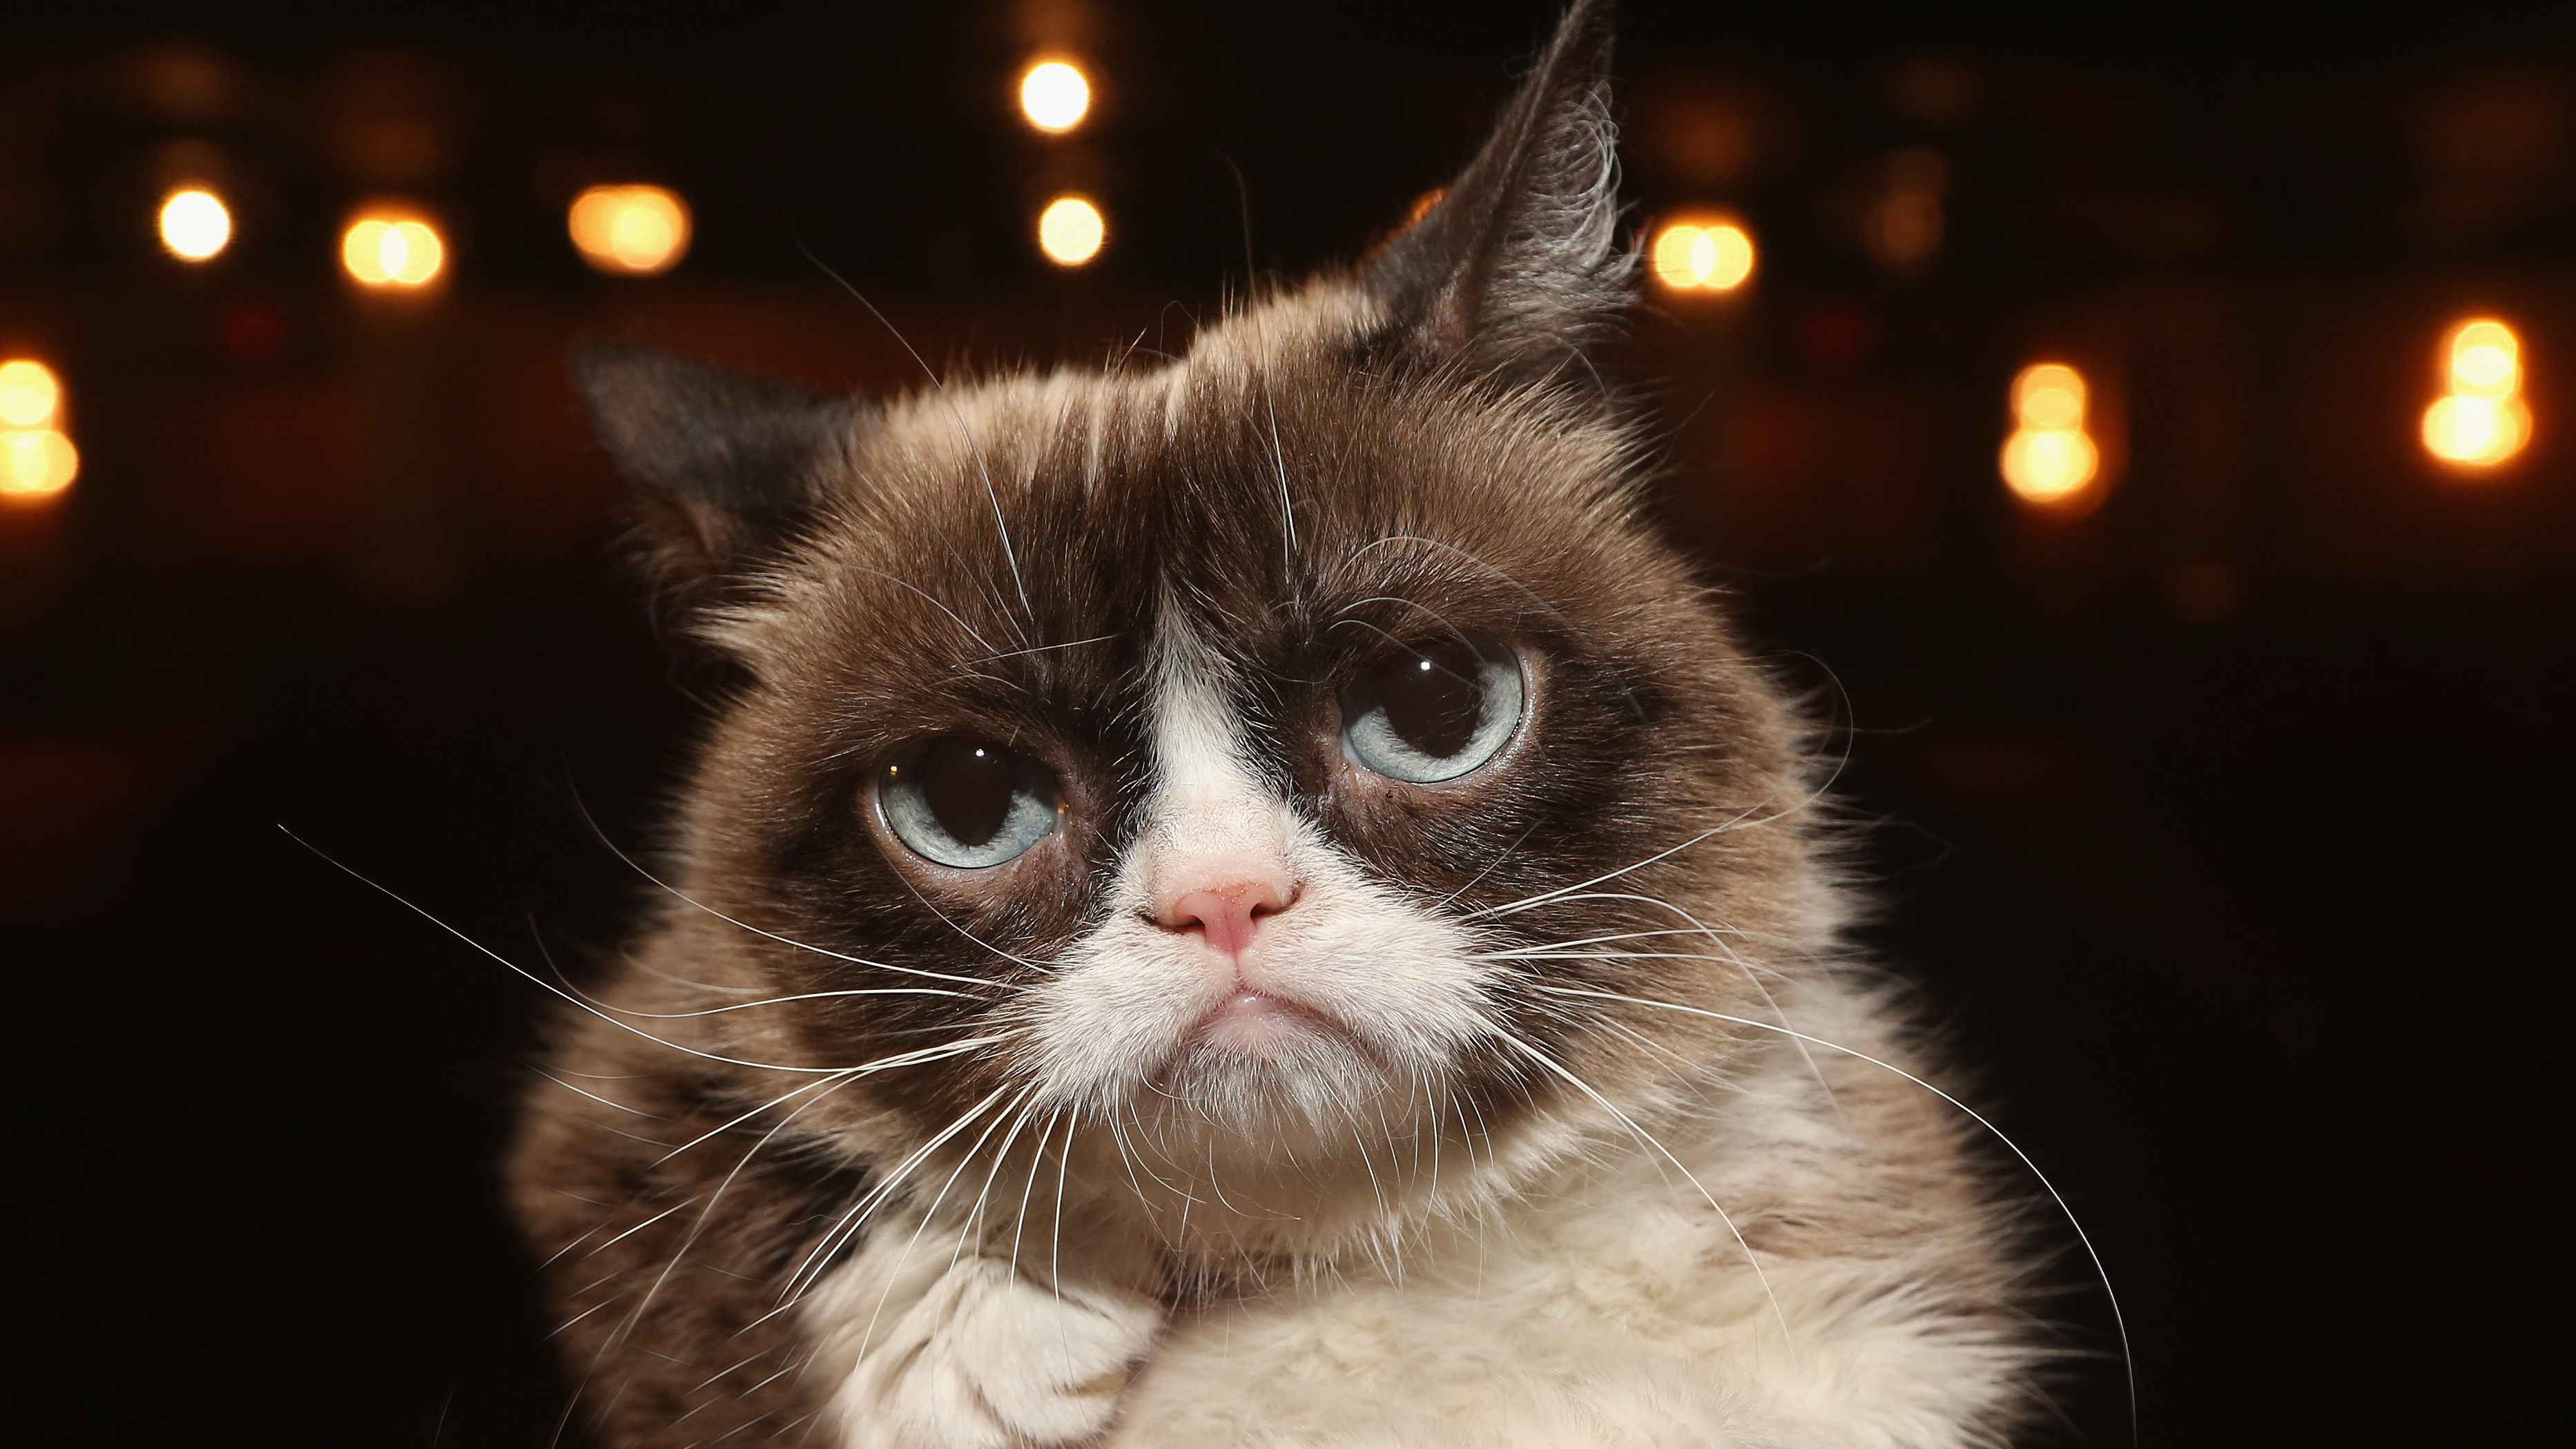 Grumpy Cat Dies; Her Spirit Will Live On, Family Says